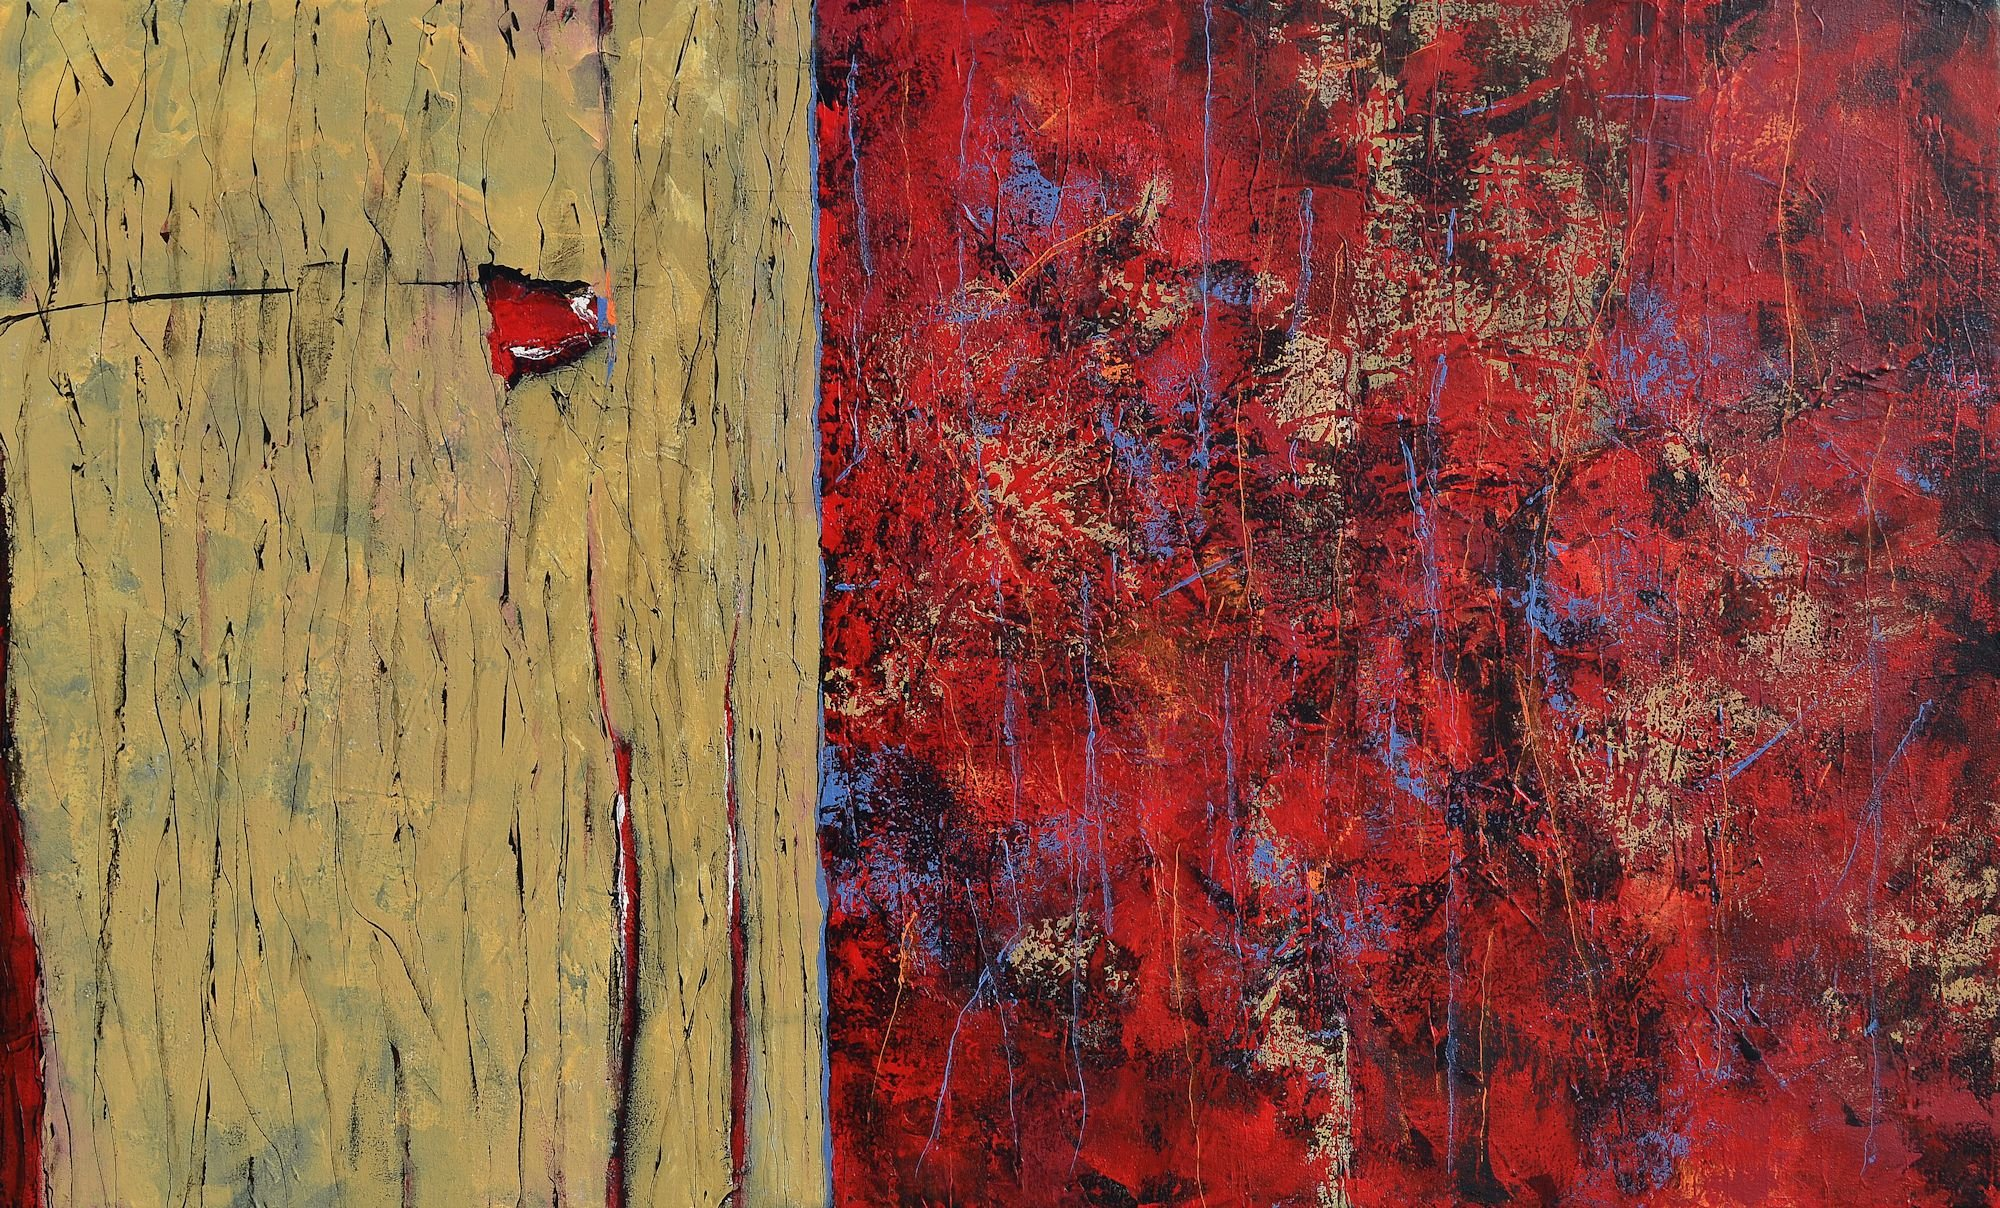 Rustic And Red By Nancy Eckels Acrylic Painting Artful